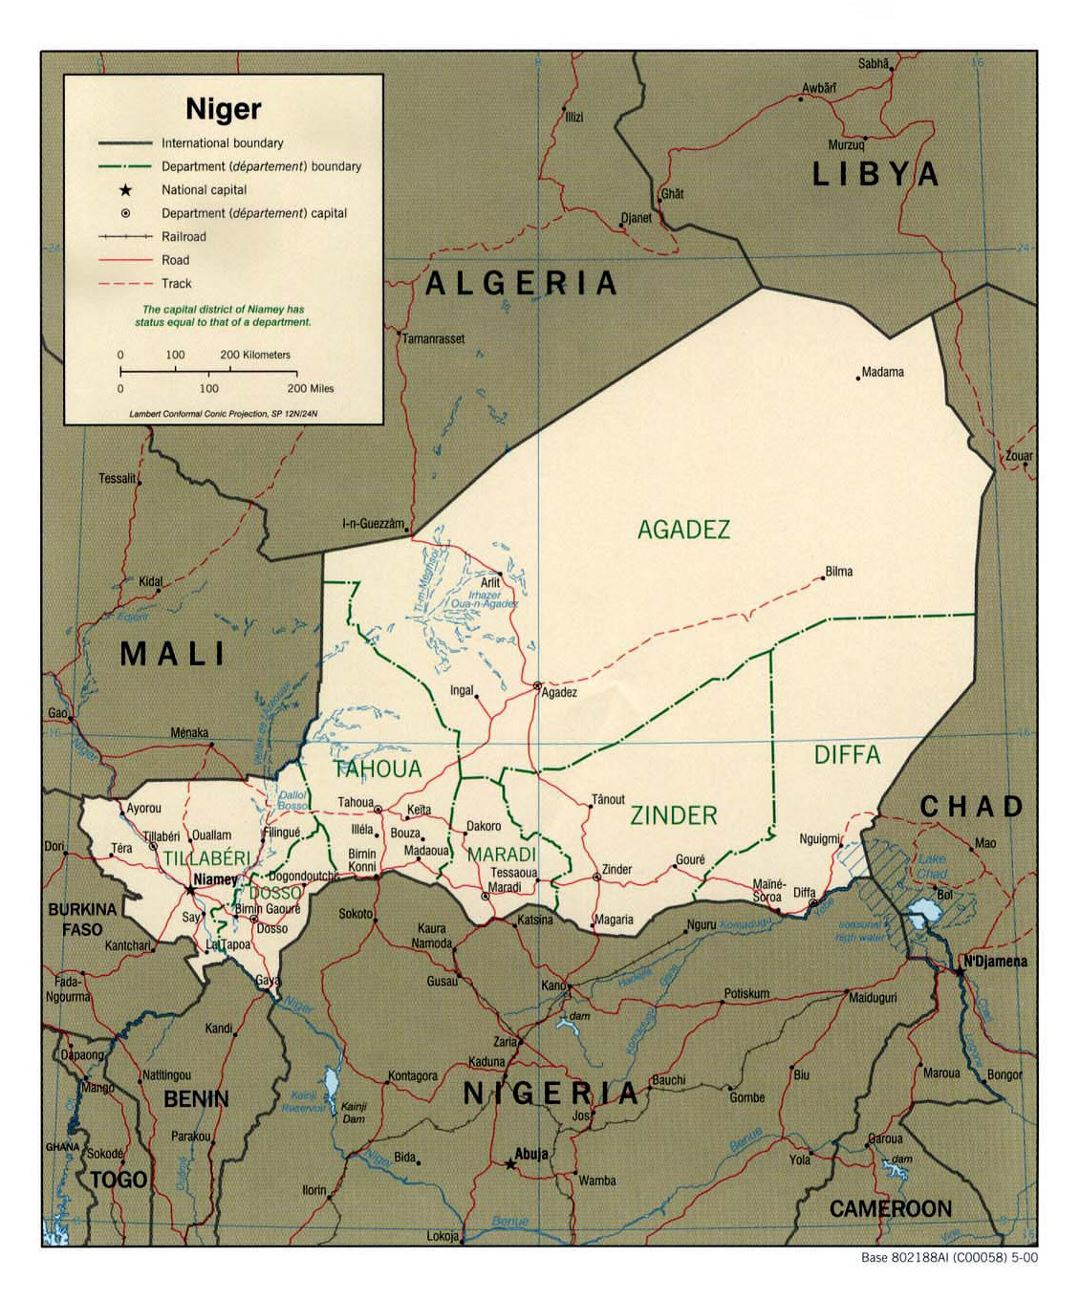 Detailed political and administrative map of Niger with roads, railroads and major cities - 2000